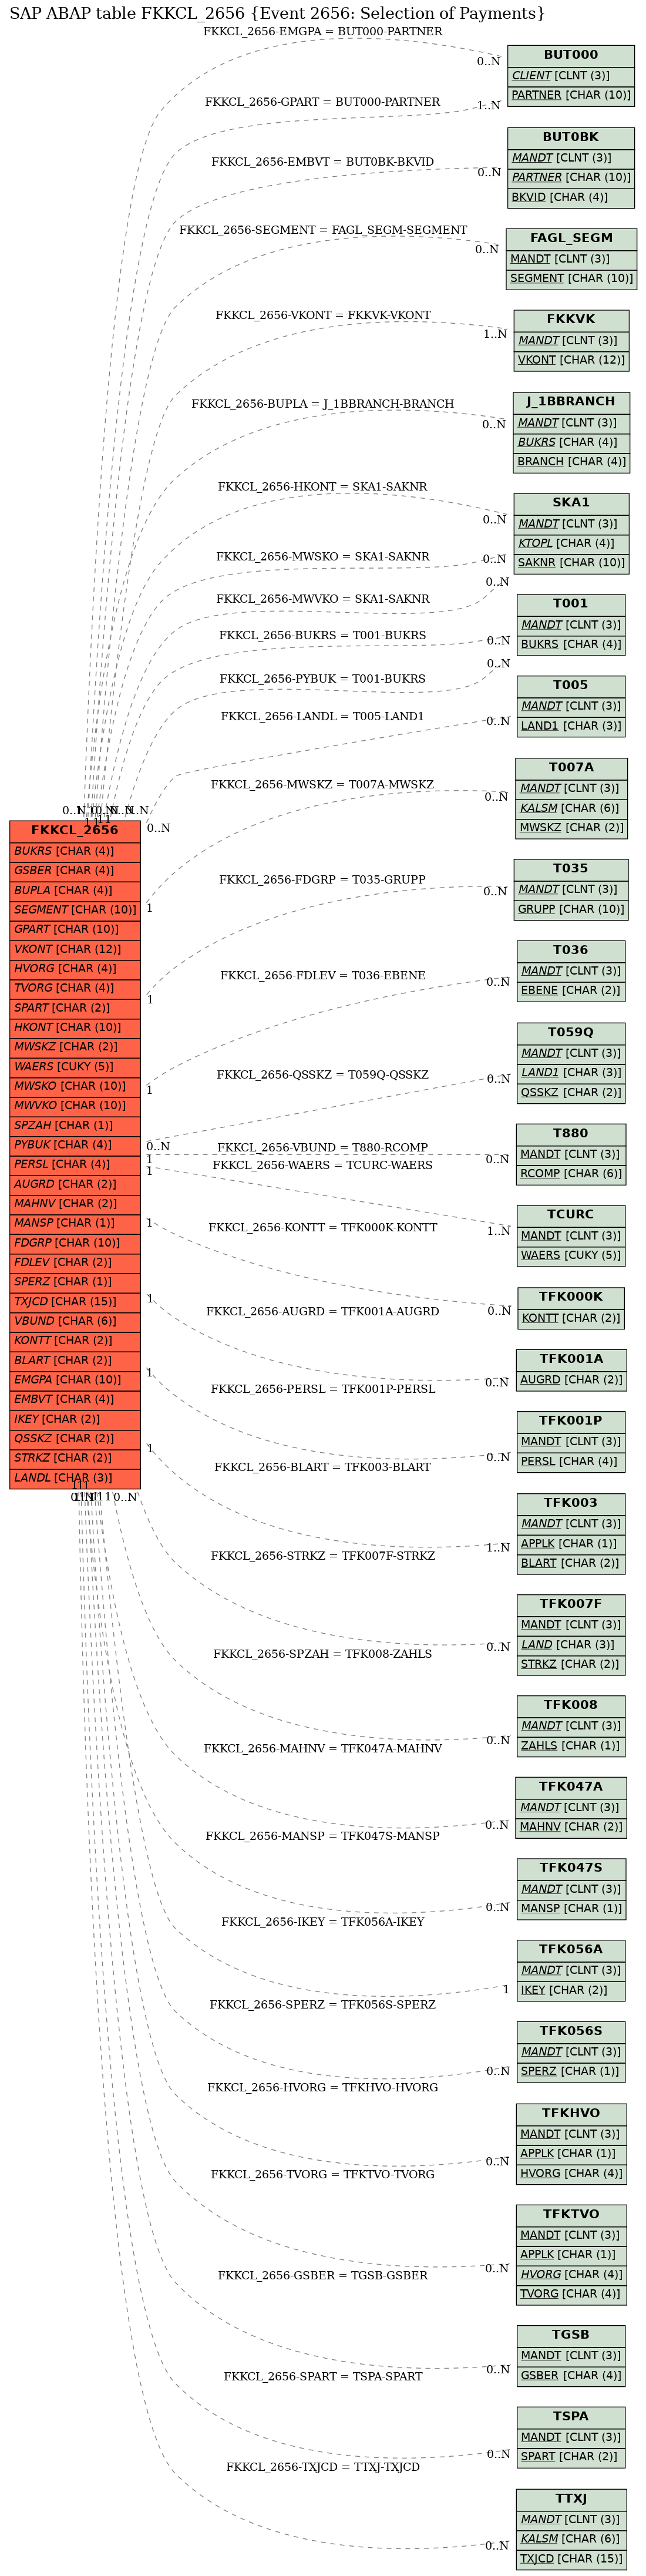 E-R Diagram for table FKKCL_2656 (Event 2656: Selection of Payments)